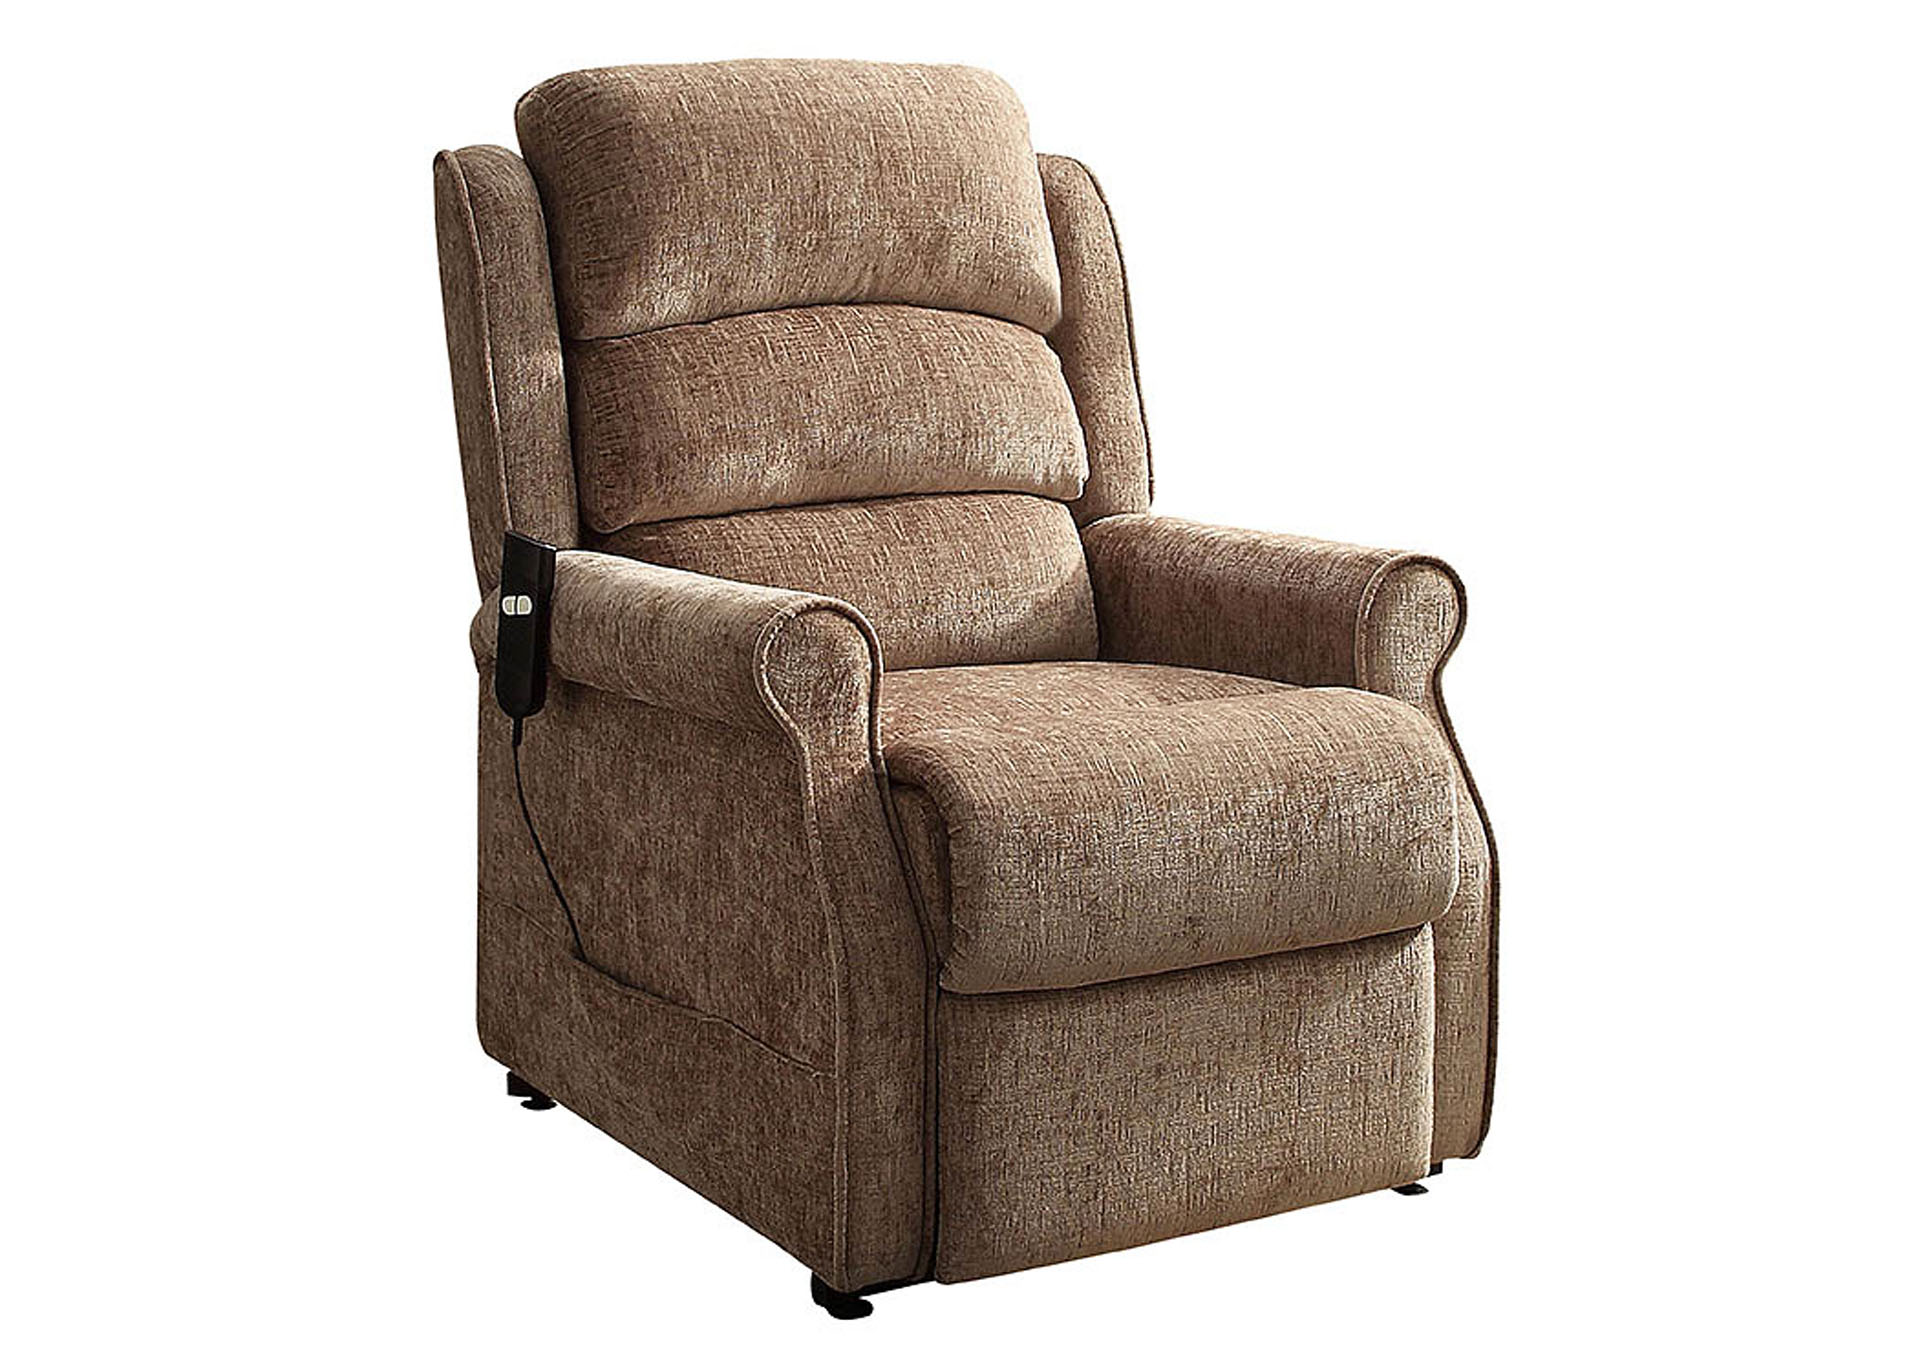 Milford Chenille Power Lift Chair,Homelegance